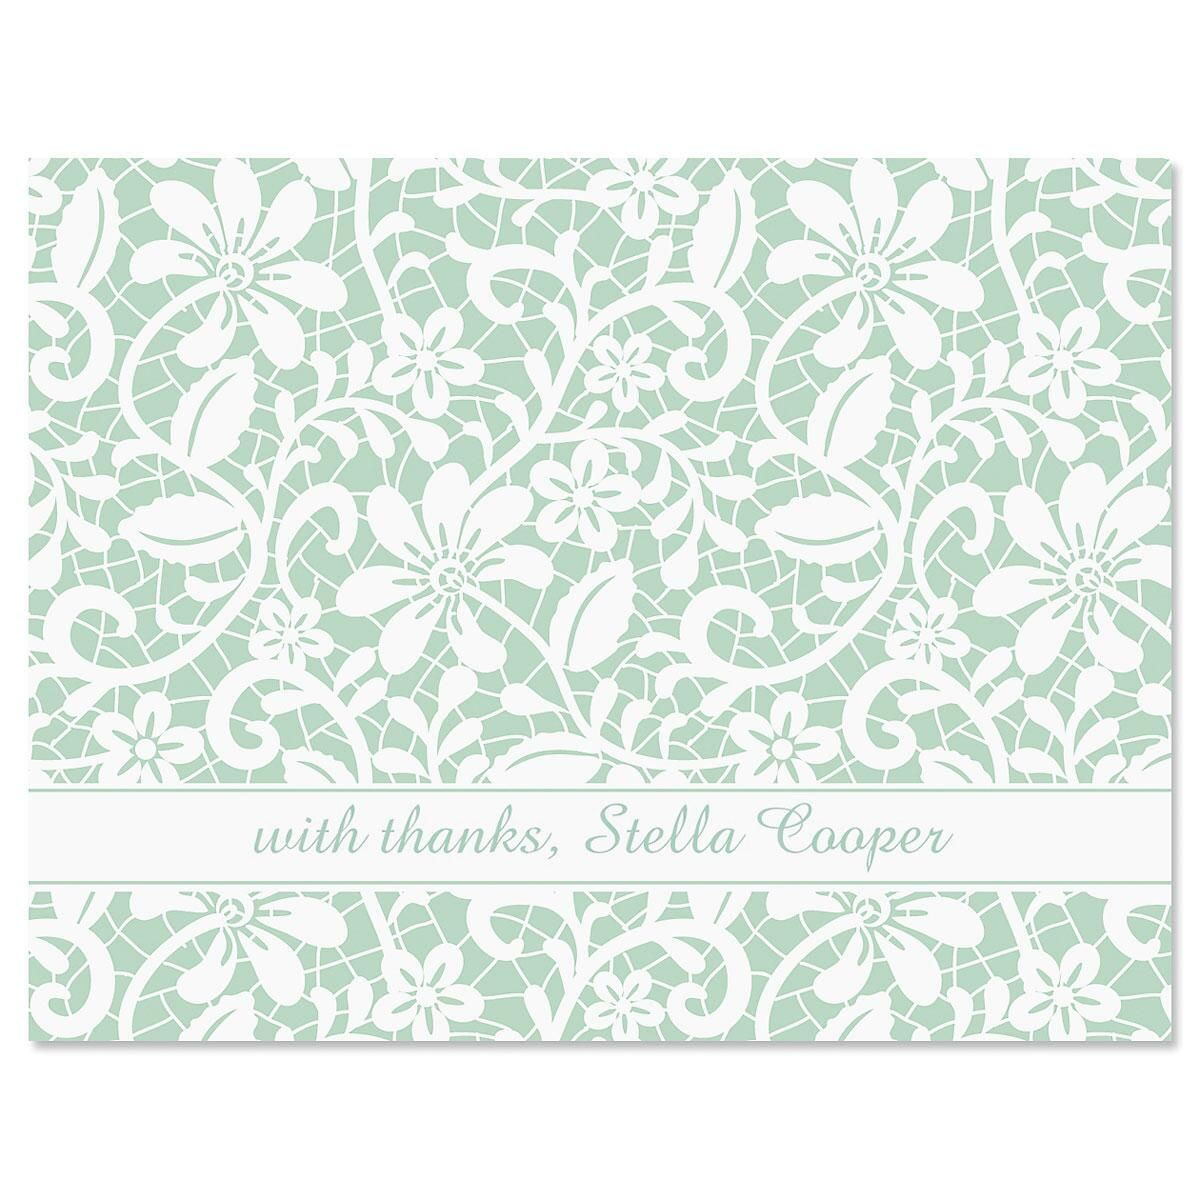 Lace Thank You Cards